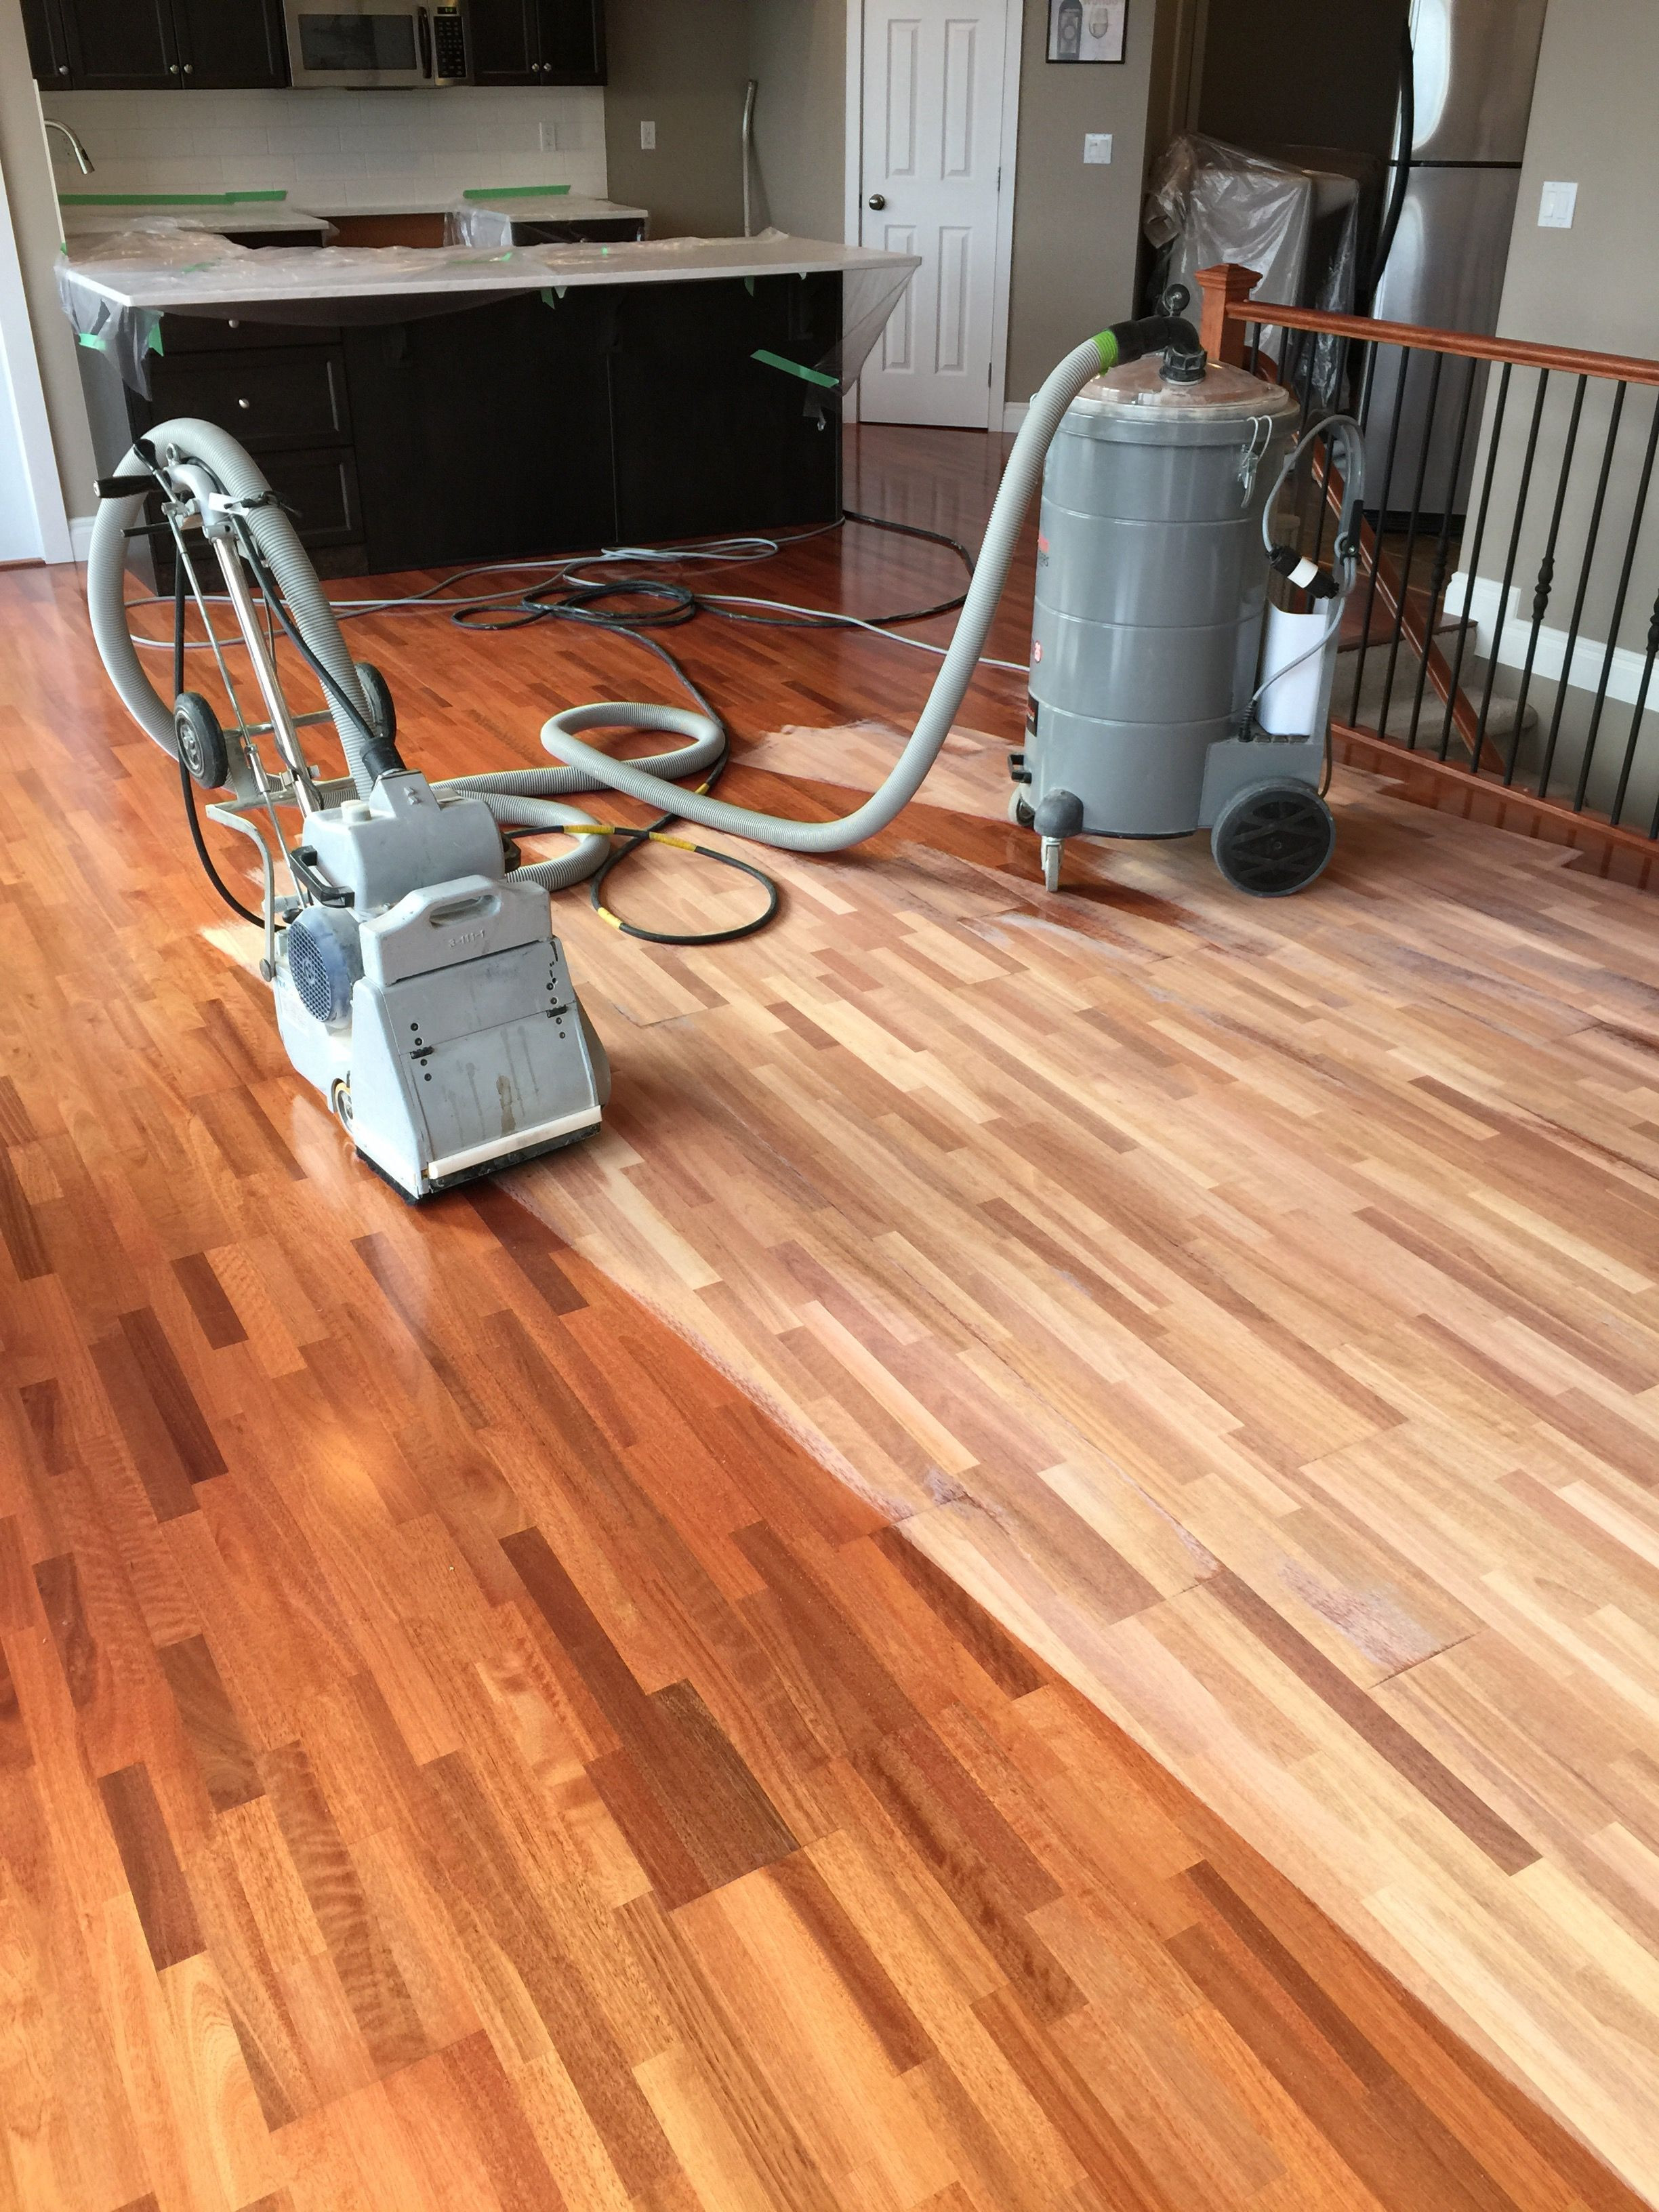 how to refinish hardwood floors with pet stains of how to refinish wood floors step by step evergreen hardwood floors within how to refinish wood floors step by step evergreen hardwood floors ensure that your hardwood floor